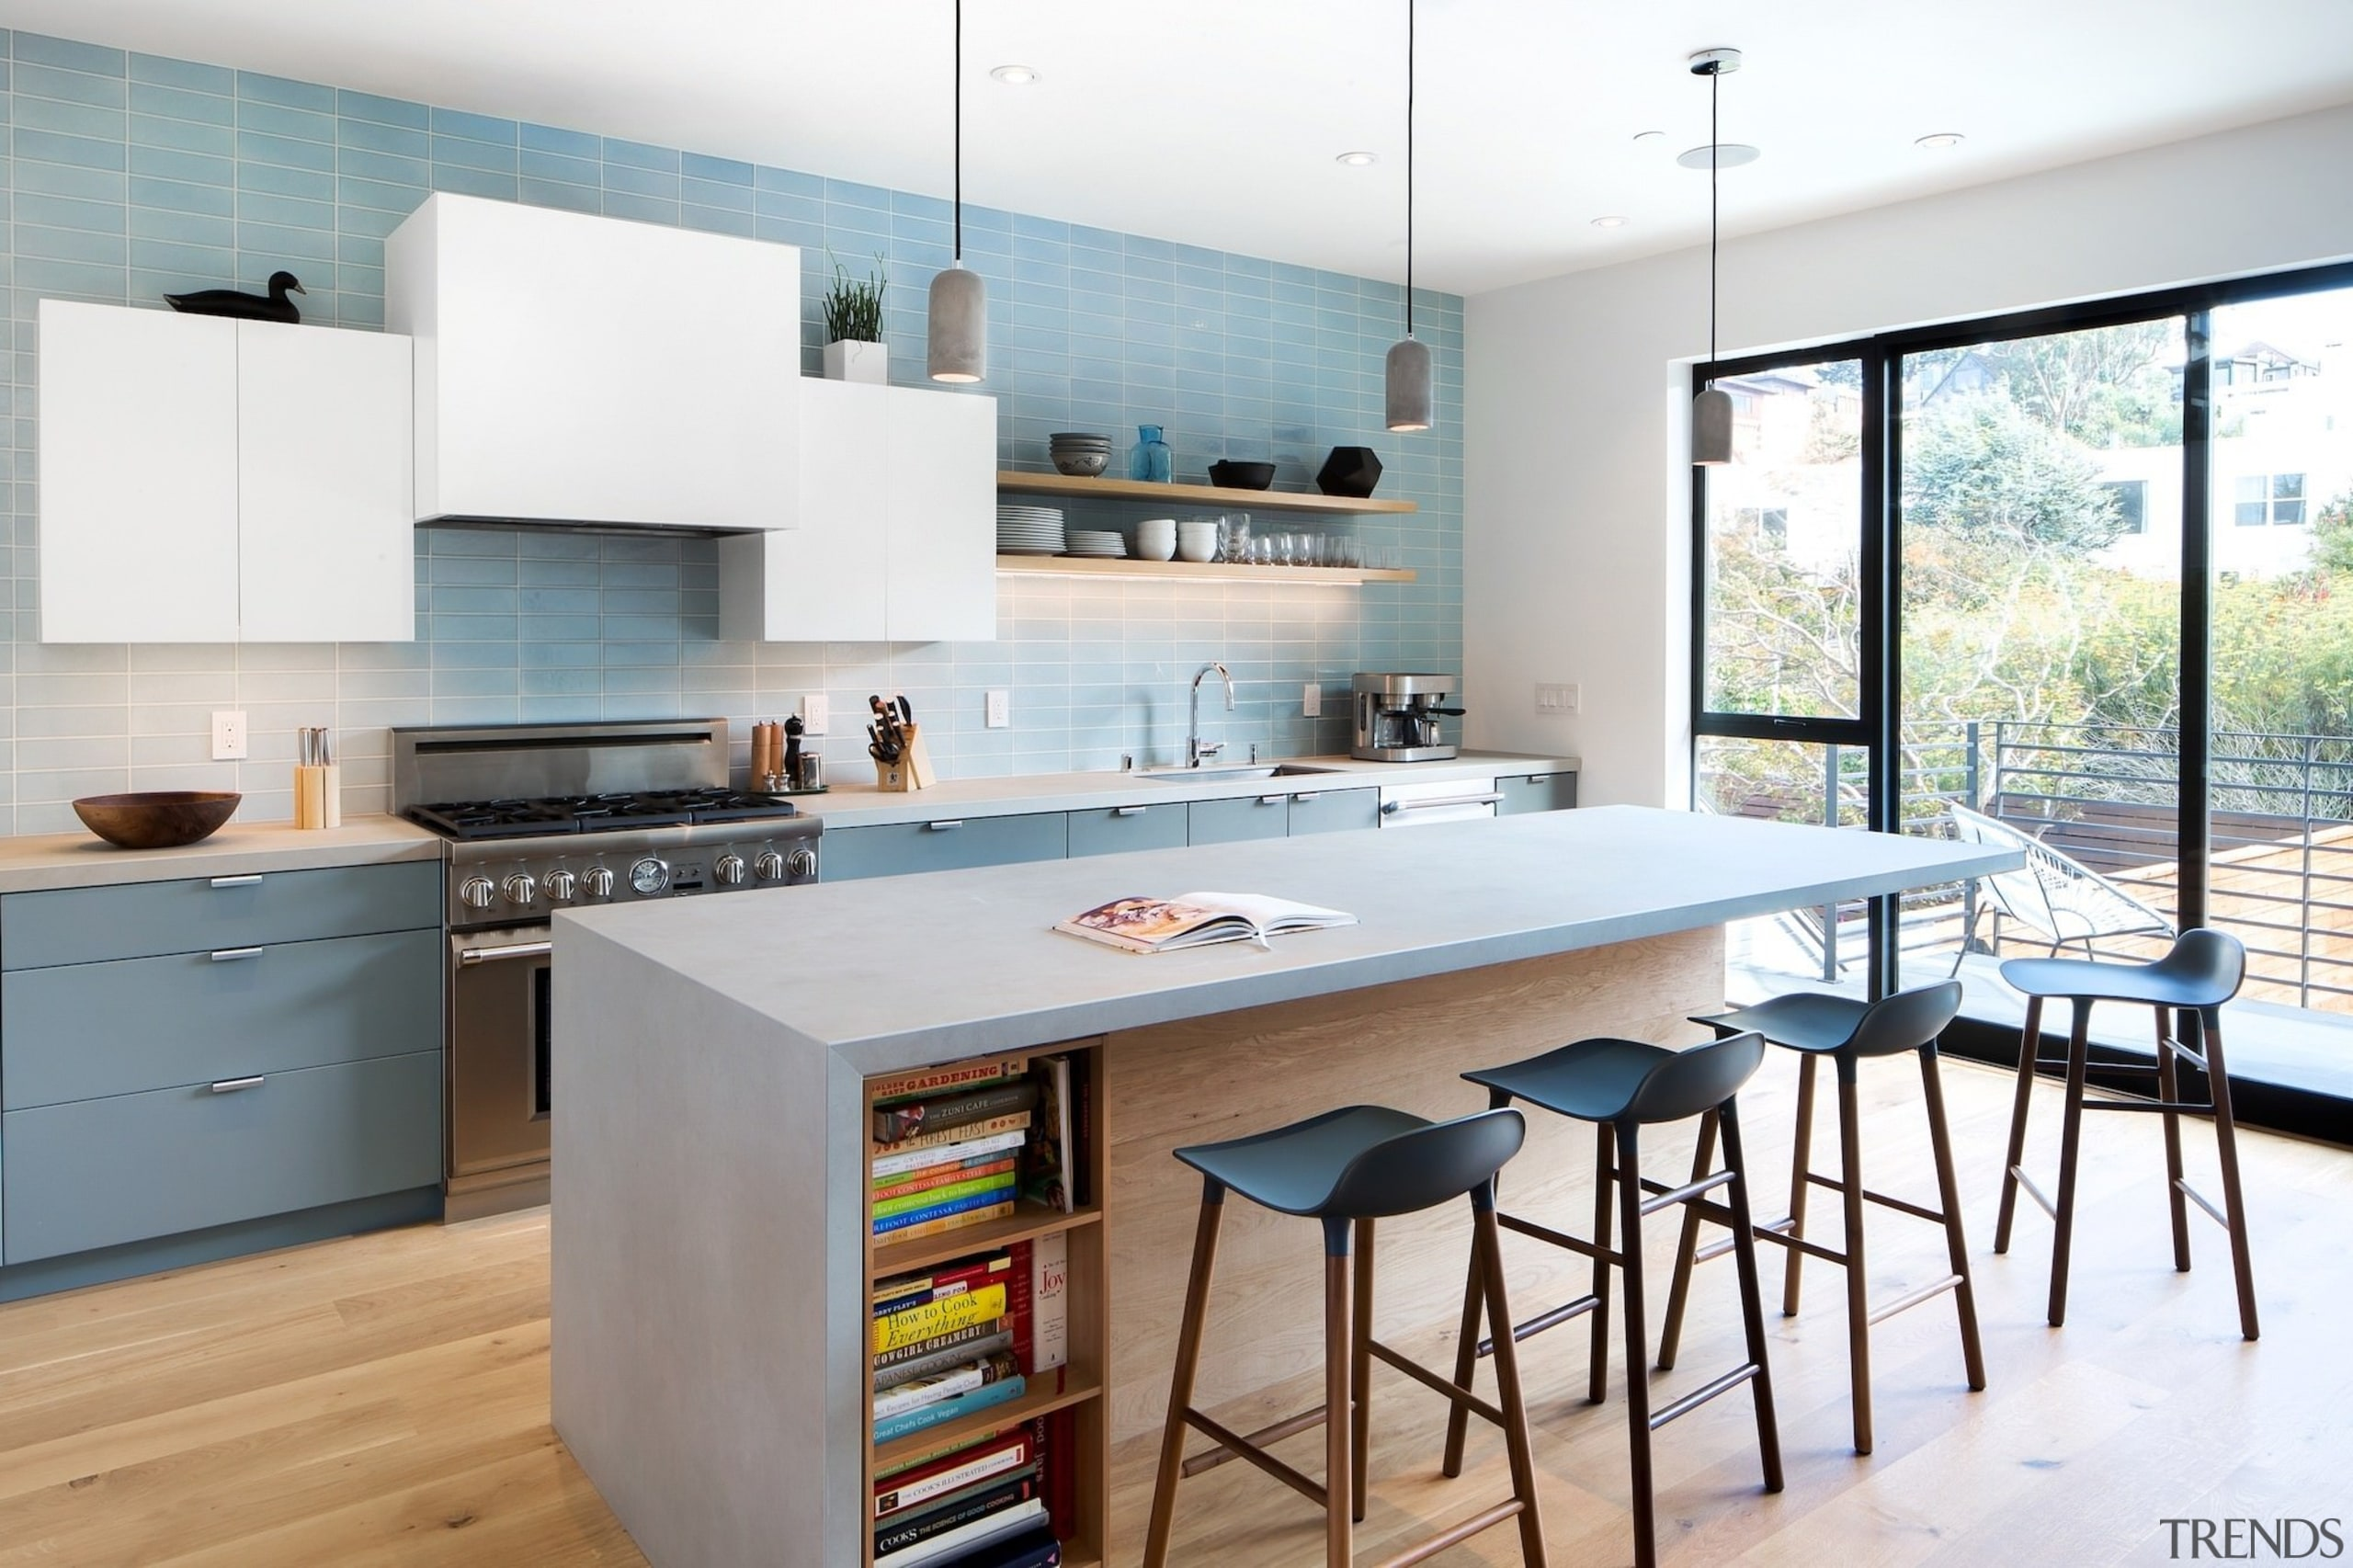 It's the perfect kitchen for a growing family countertop, cuisine classique, interior design, kitchen, table, white